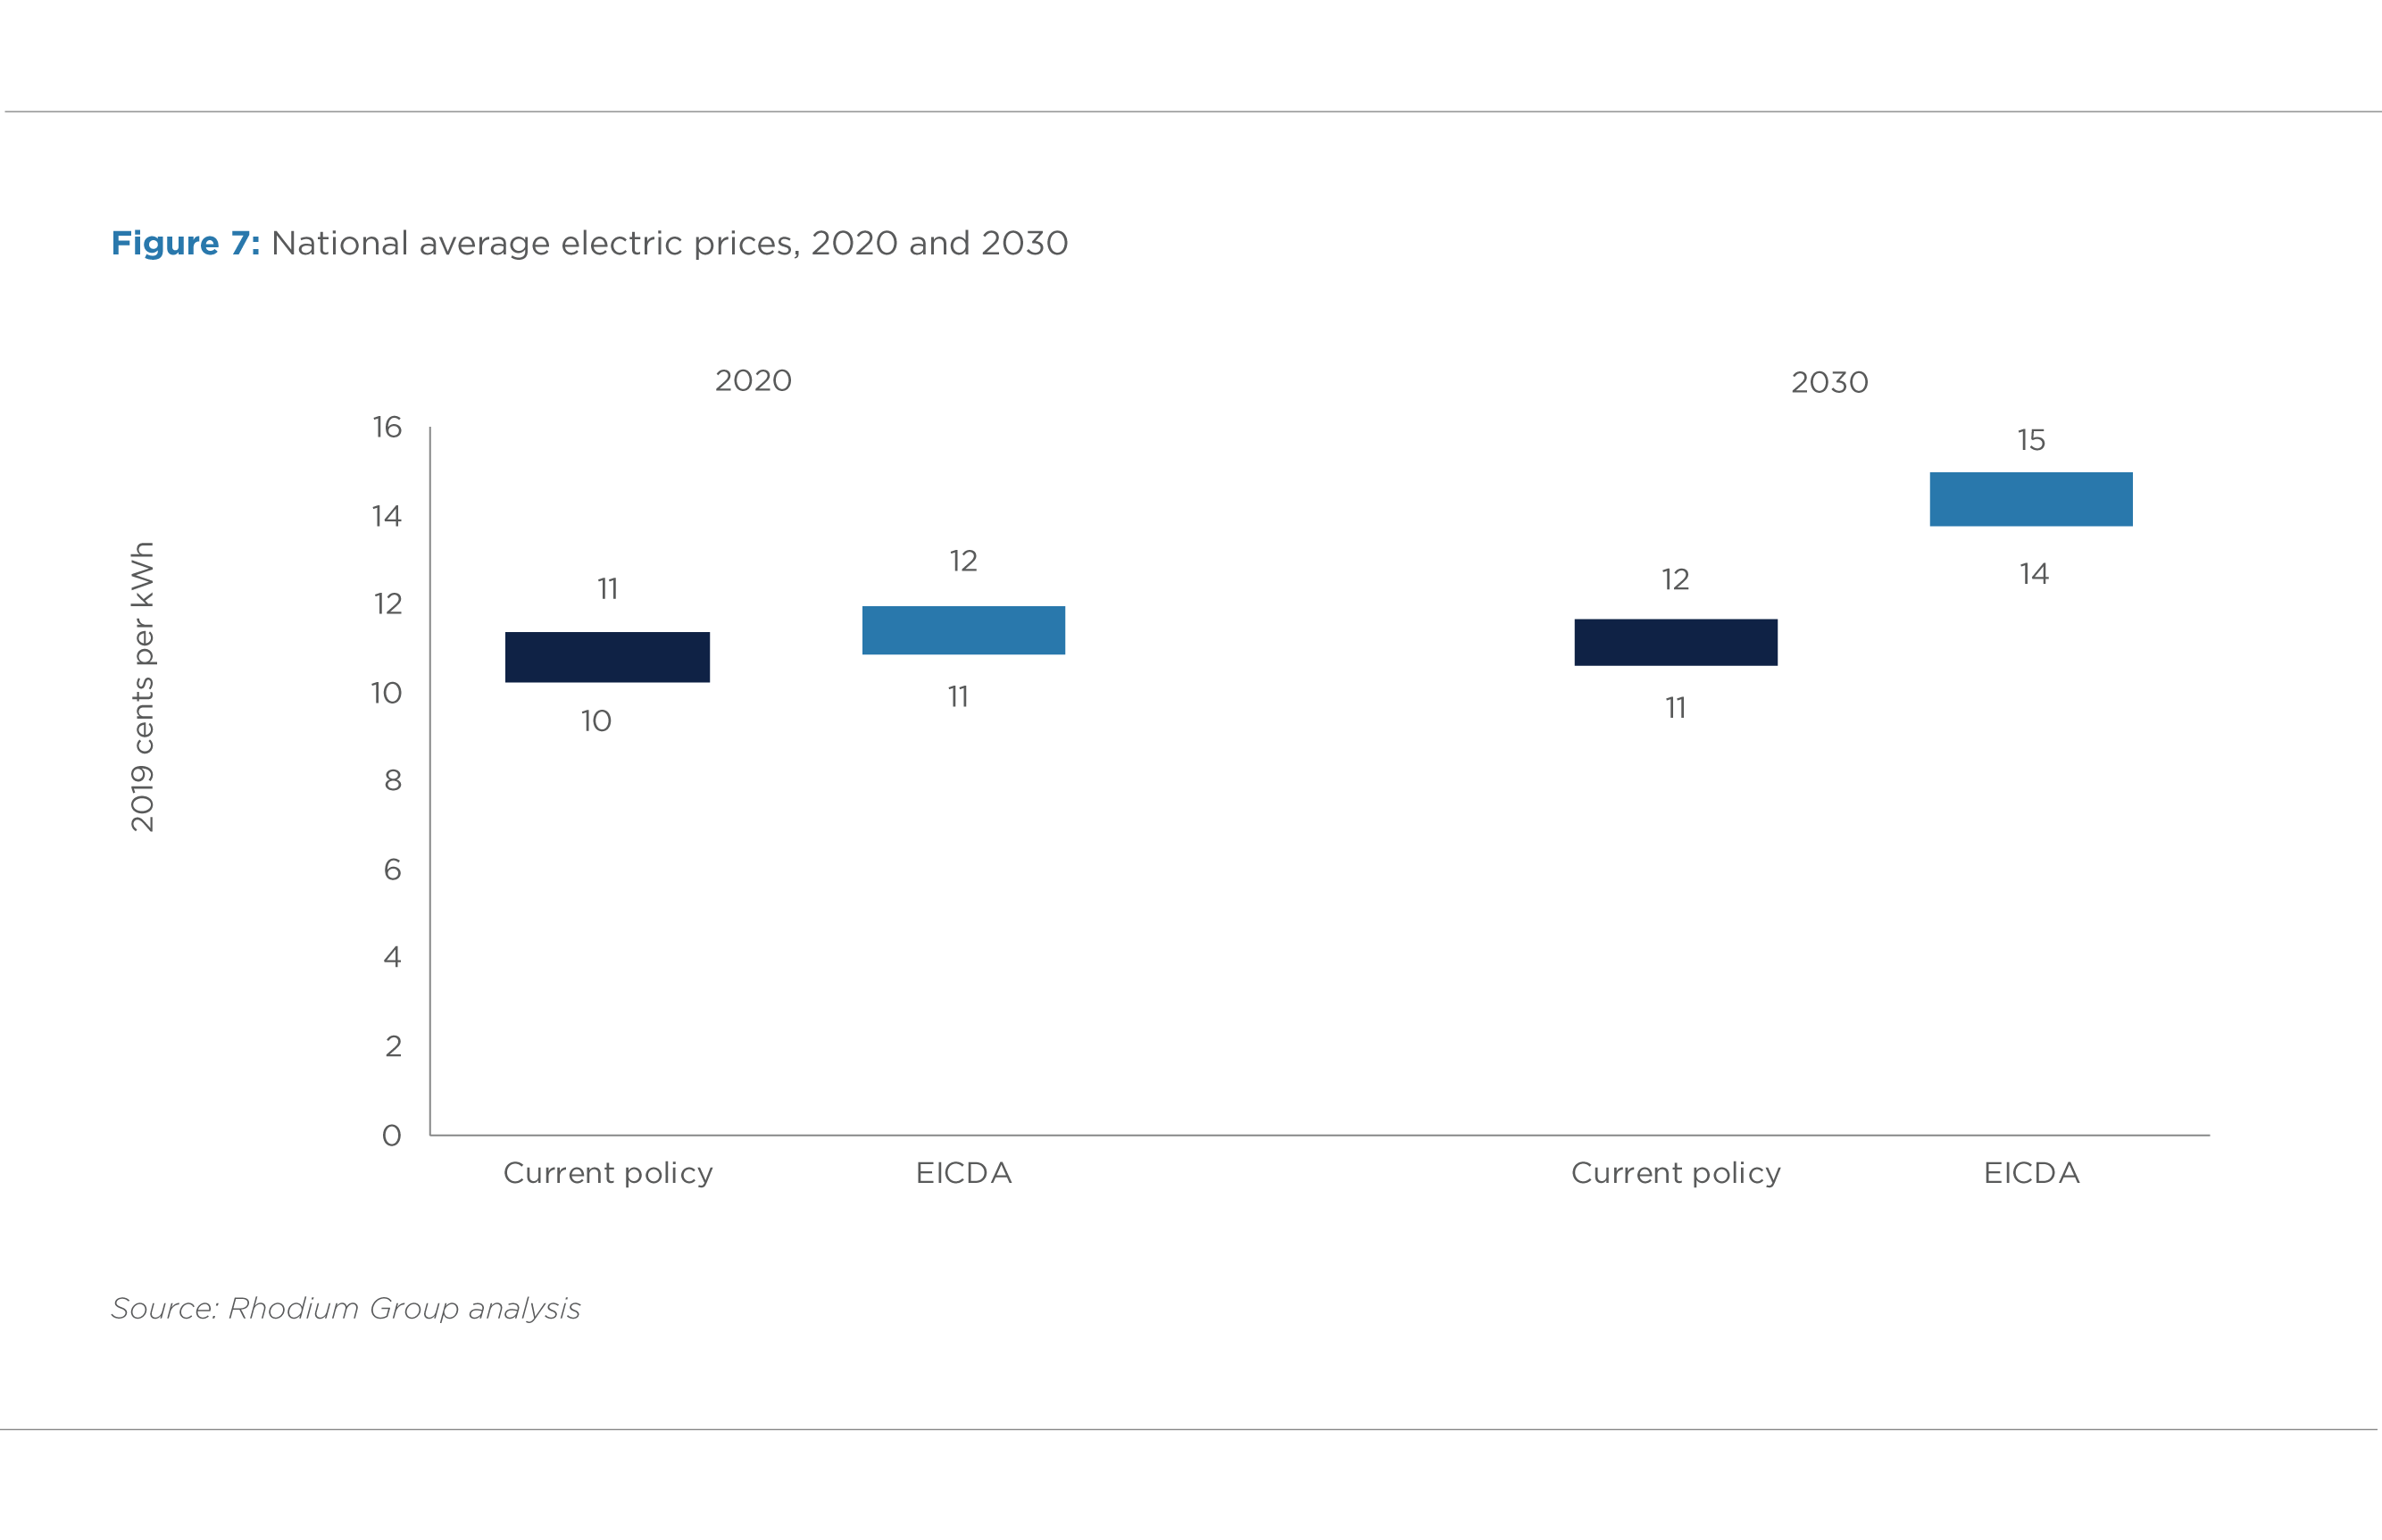 FIGURE 7. NATIONAL AVERAGE ELECTRIC PRICES, 2020 AND 2030